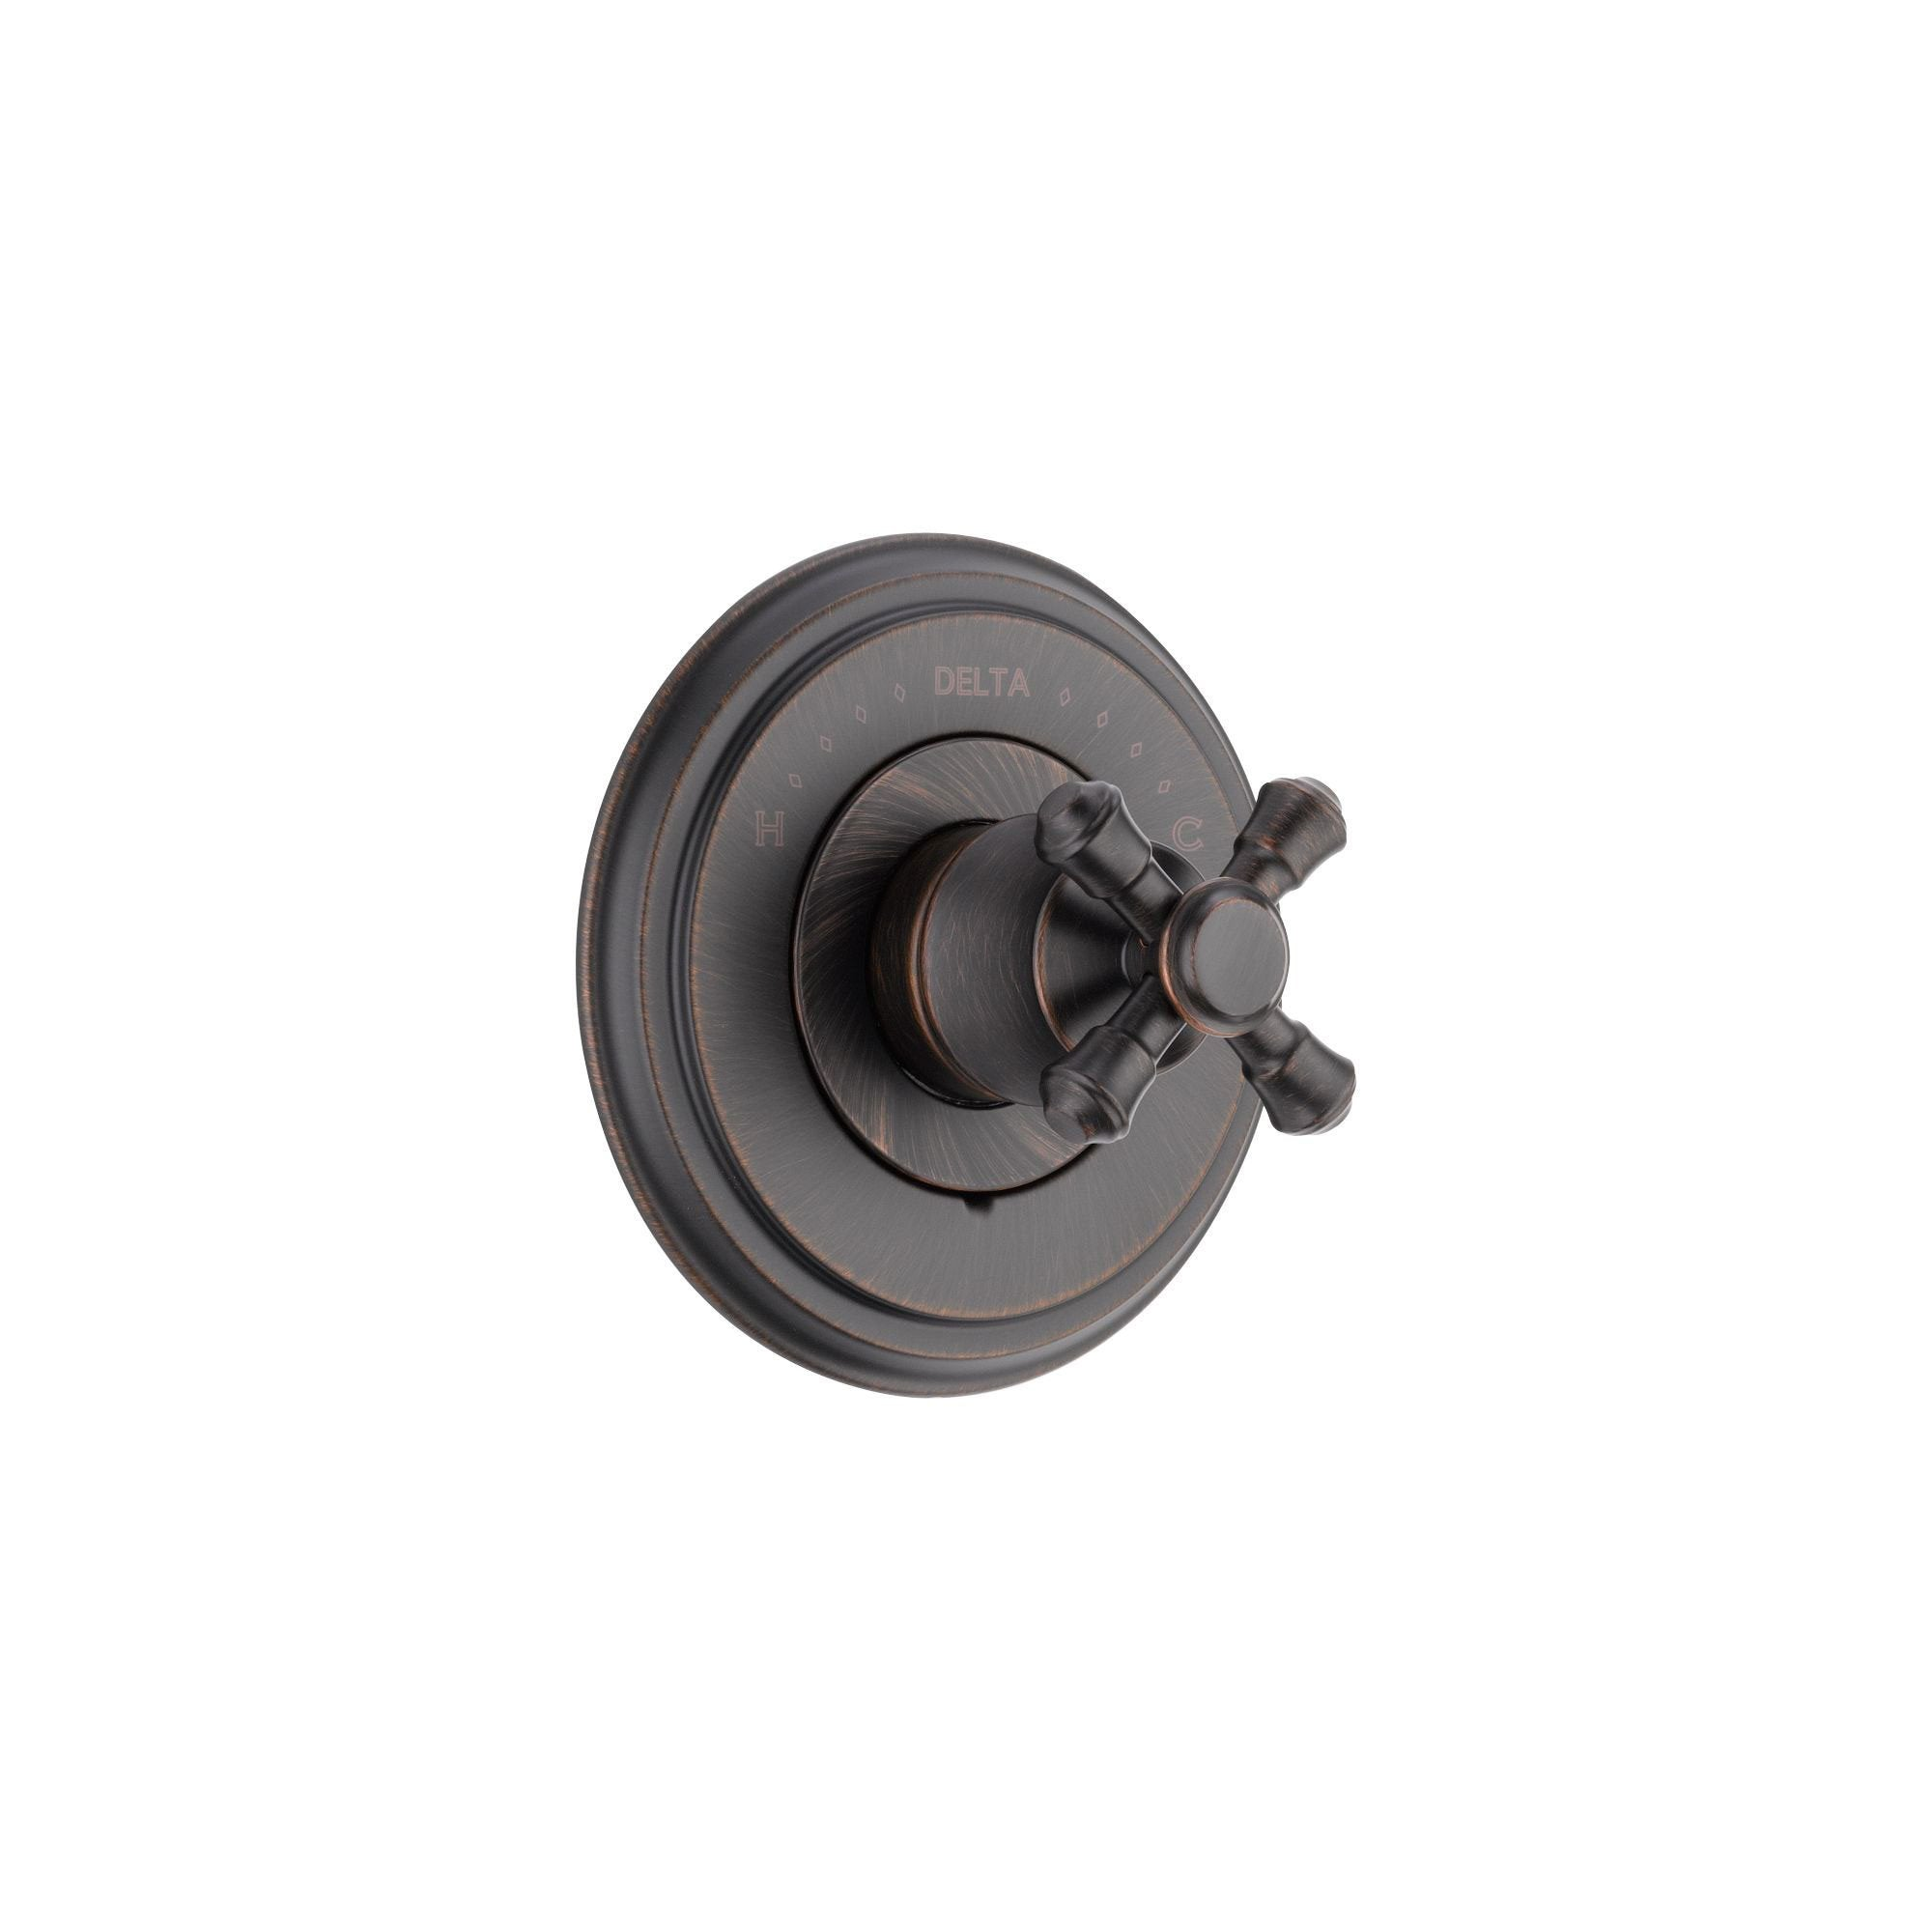 Delta Cassidy Monitor 14 Series Venetian Bronze Finish Pressure Balanced Shower Faucet Control INCLUDES Rough-in Valve with Stops and Single Cross Handle D1247V